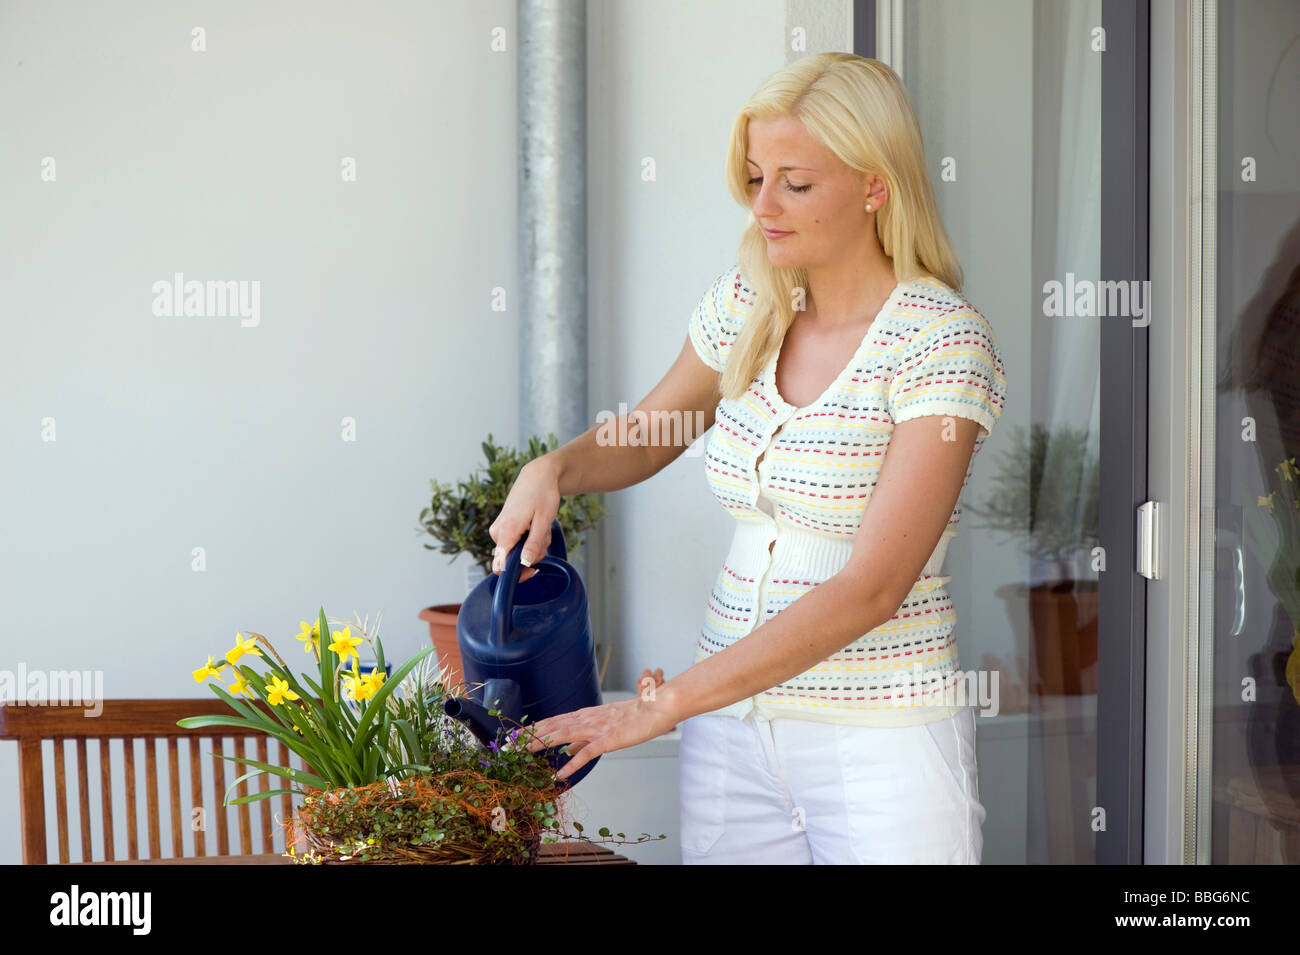 Young woman watering flowers on a balcony Stock Photo